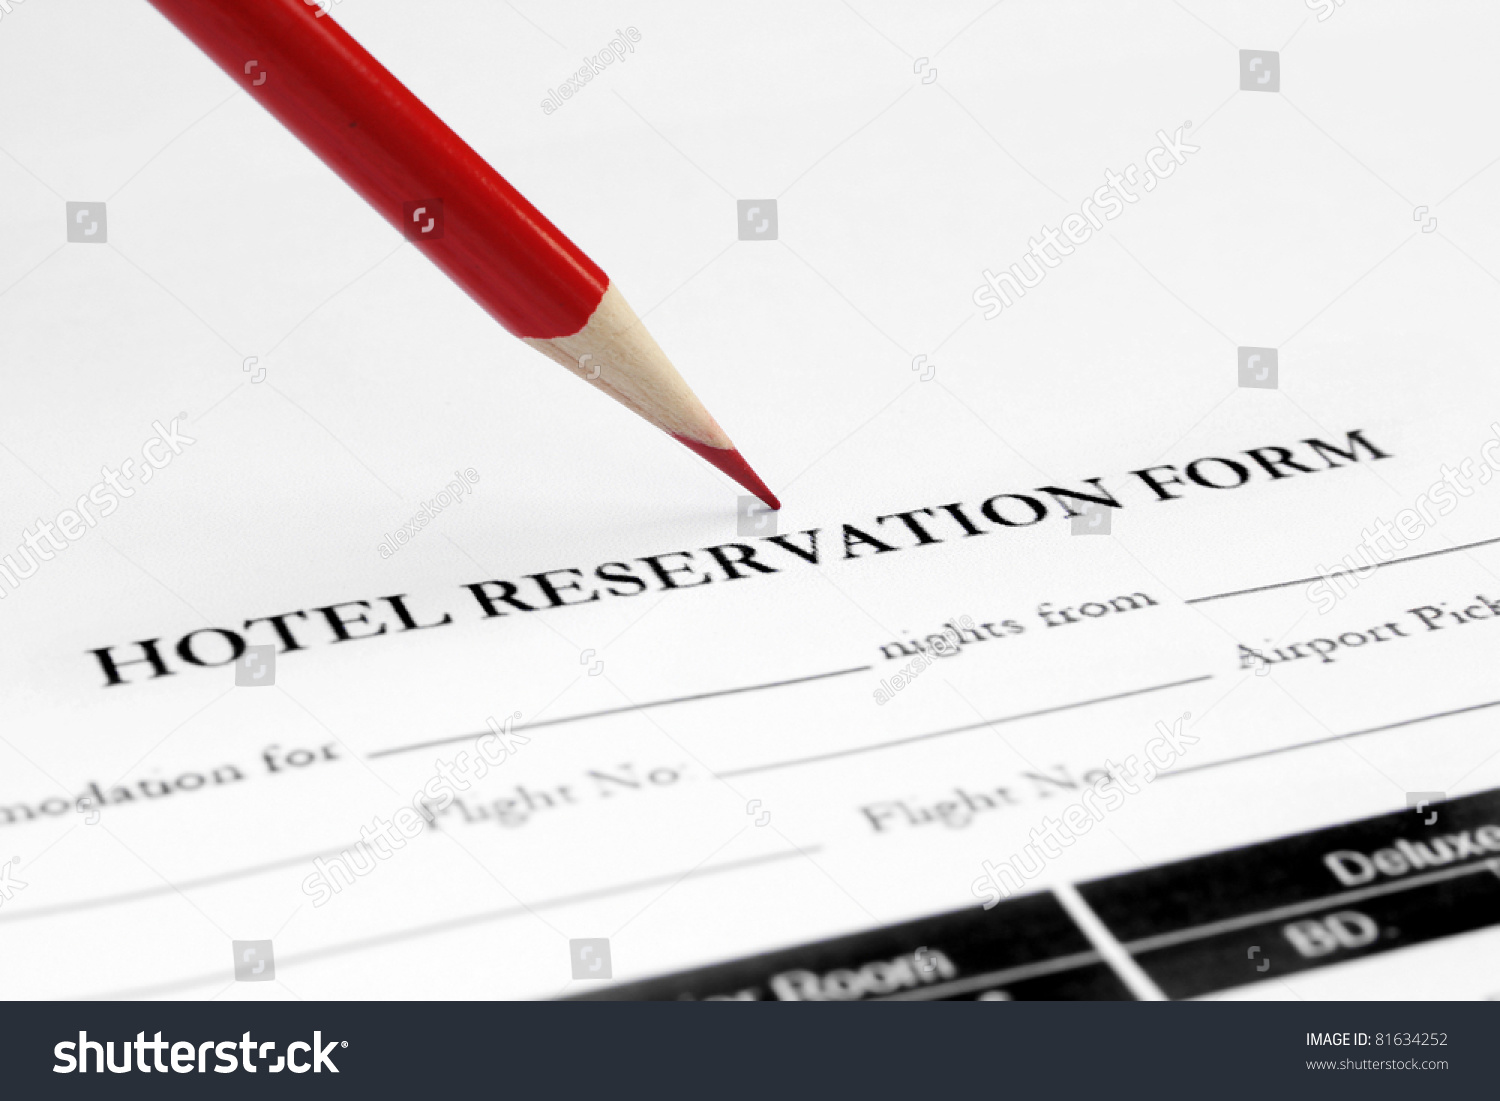 Hotel reservation form stock photo royalty free 81634252 hotel reservation form altavistaventures Choice Image